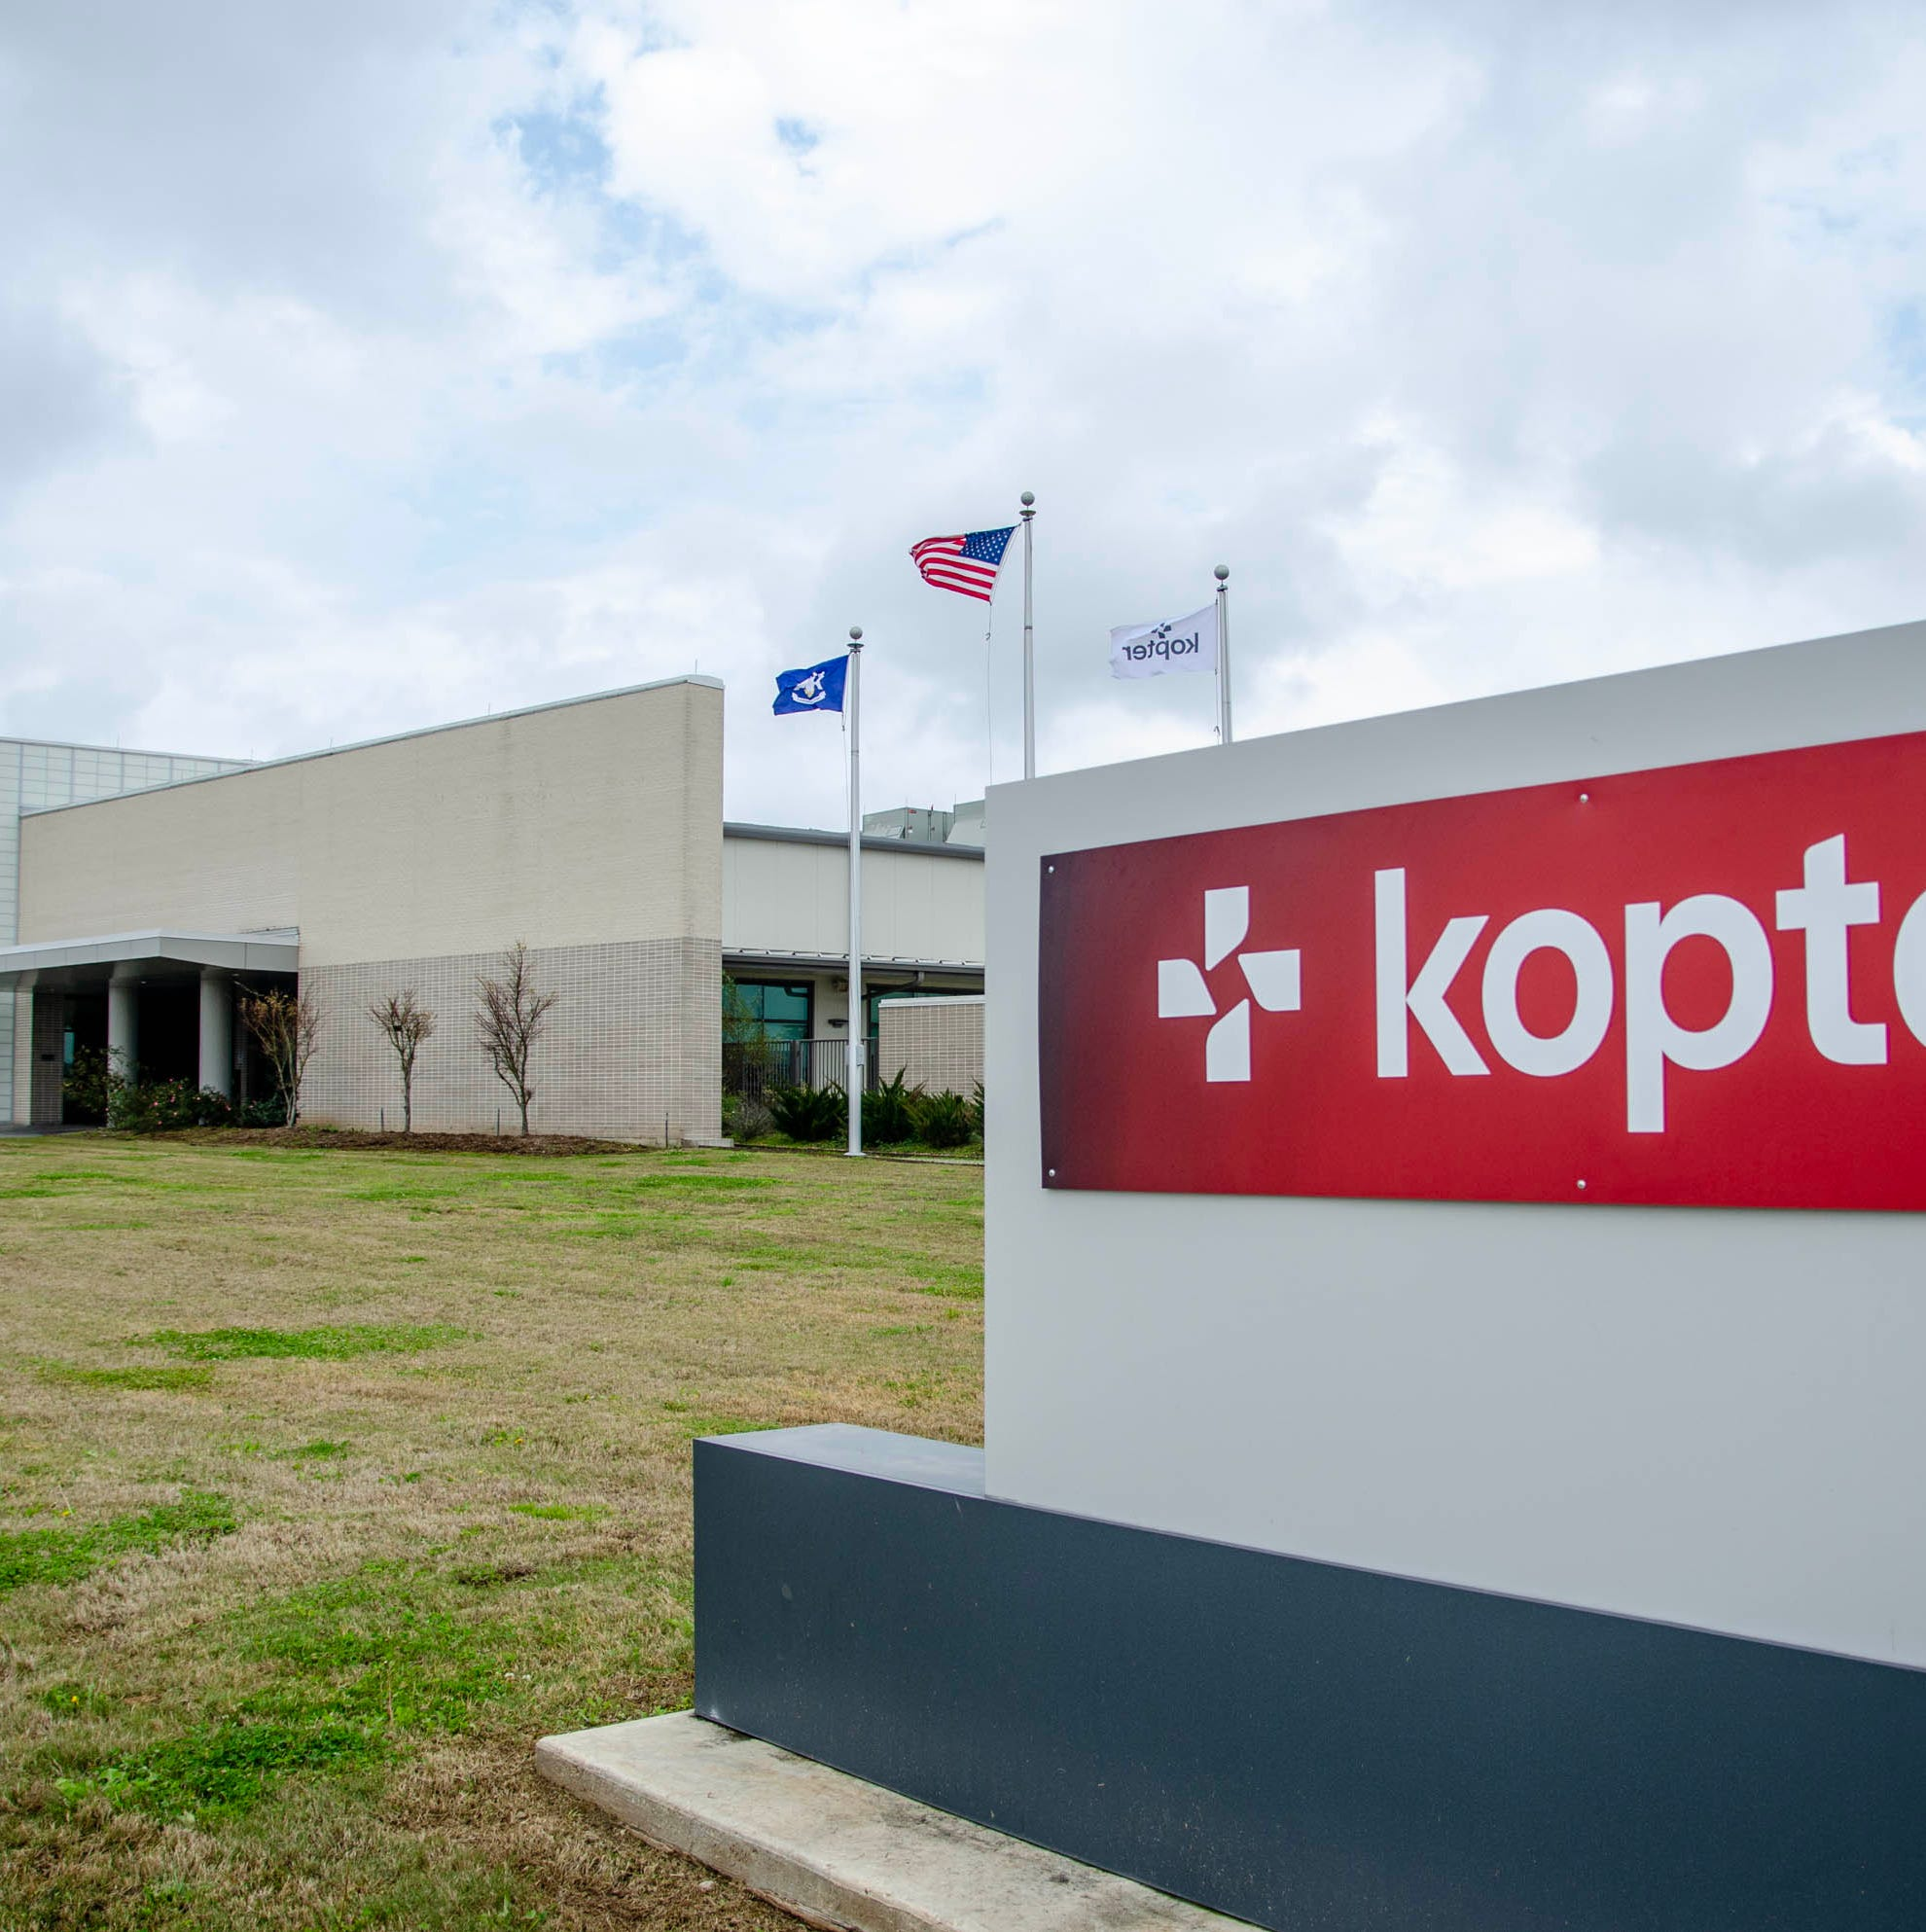 Kopter's helicopter production to start in 2021, hiring will take until 2025